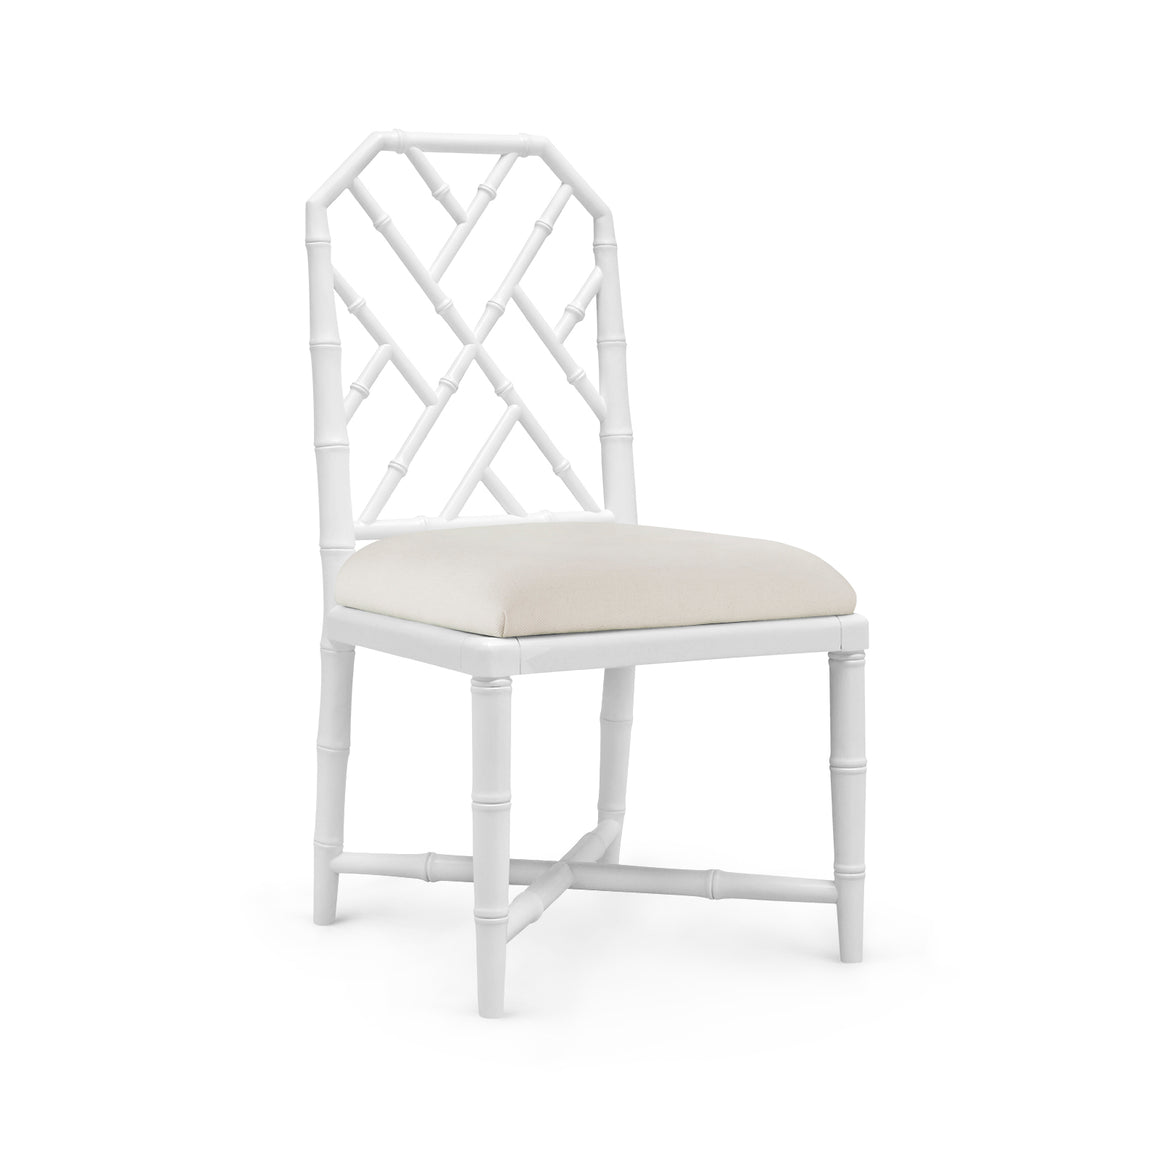 Bungalow 5 Jardin Side Chair, White